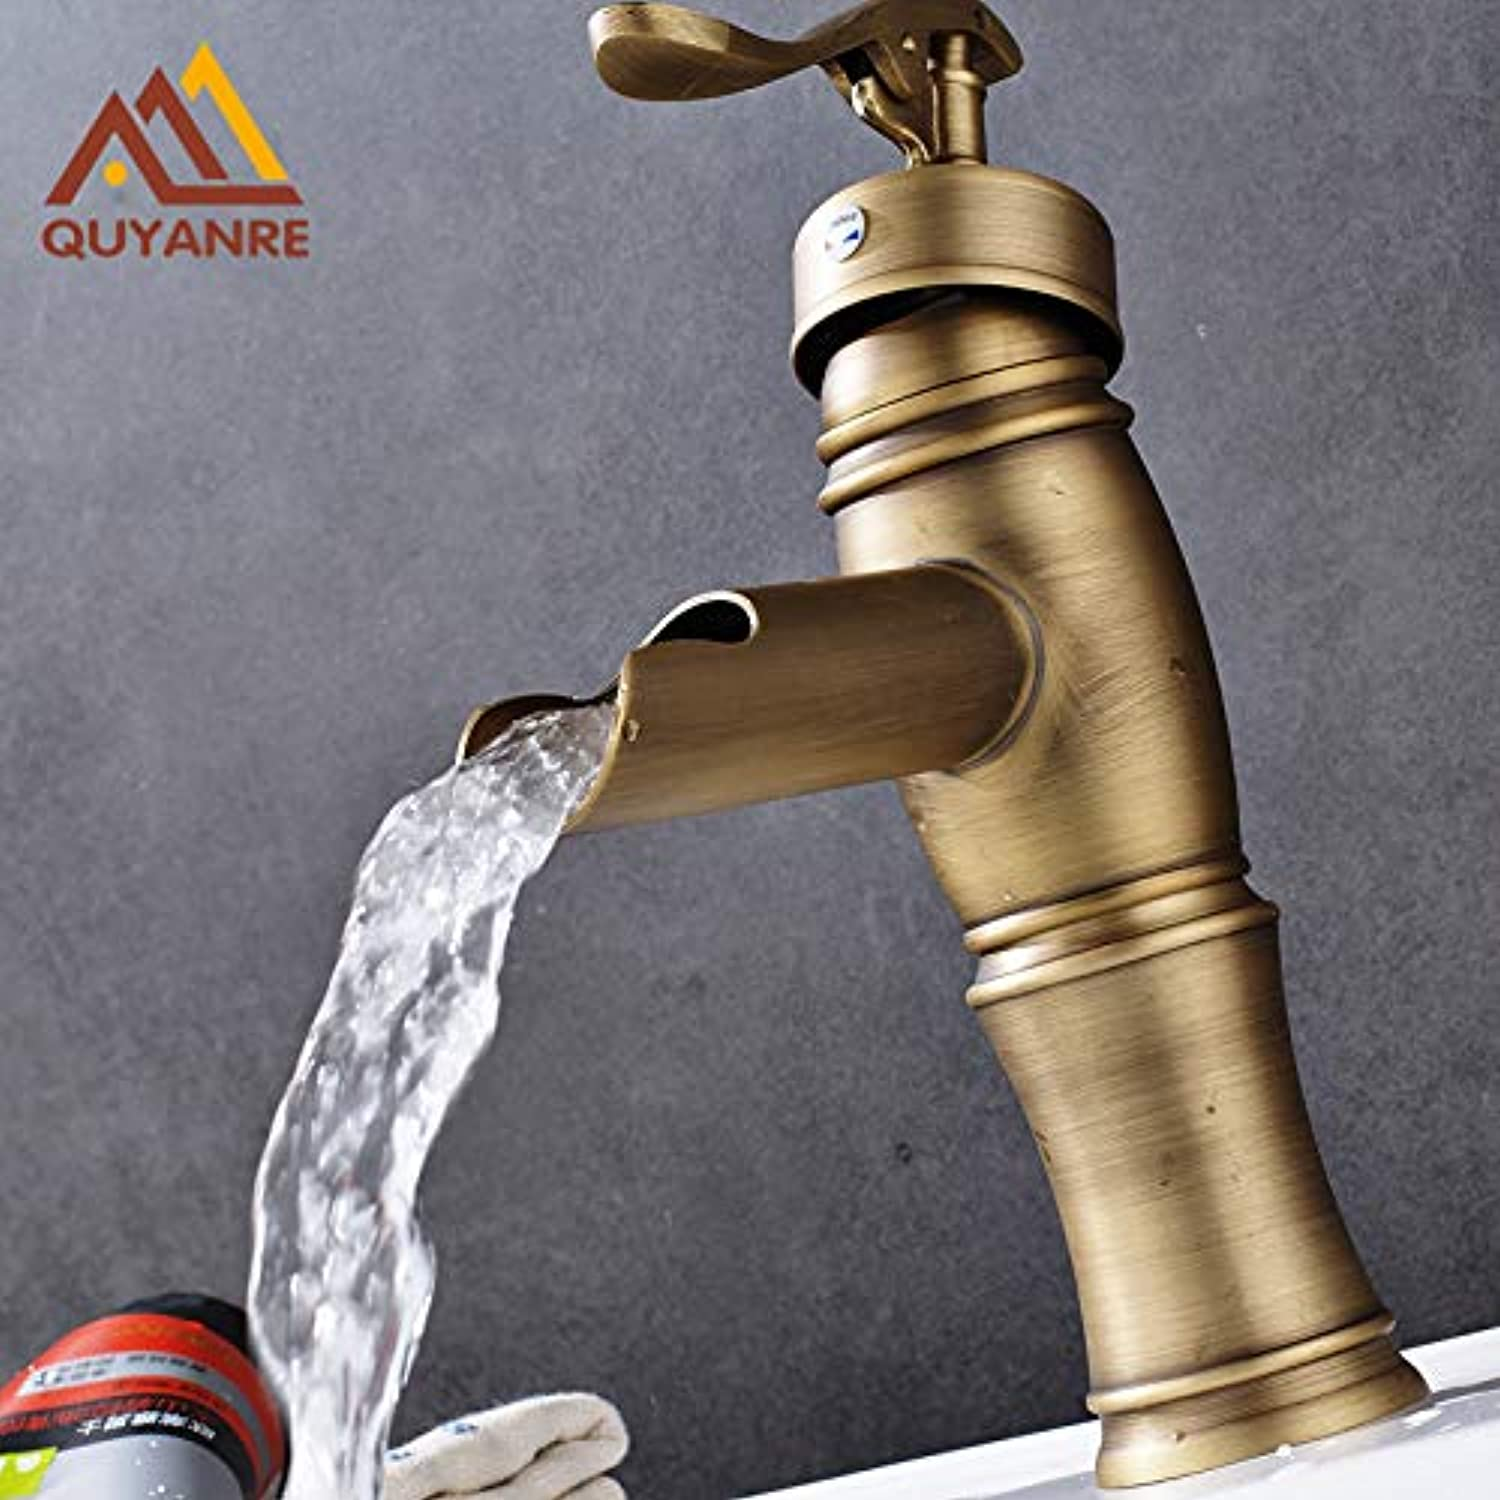 U-Enjoy Chandelier Style Basin Retro Faucet Brass Top Quality Waterfall Antique Outlet Cold and Water Mixerhot Free Shipping